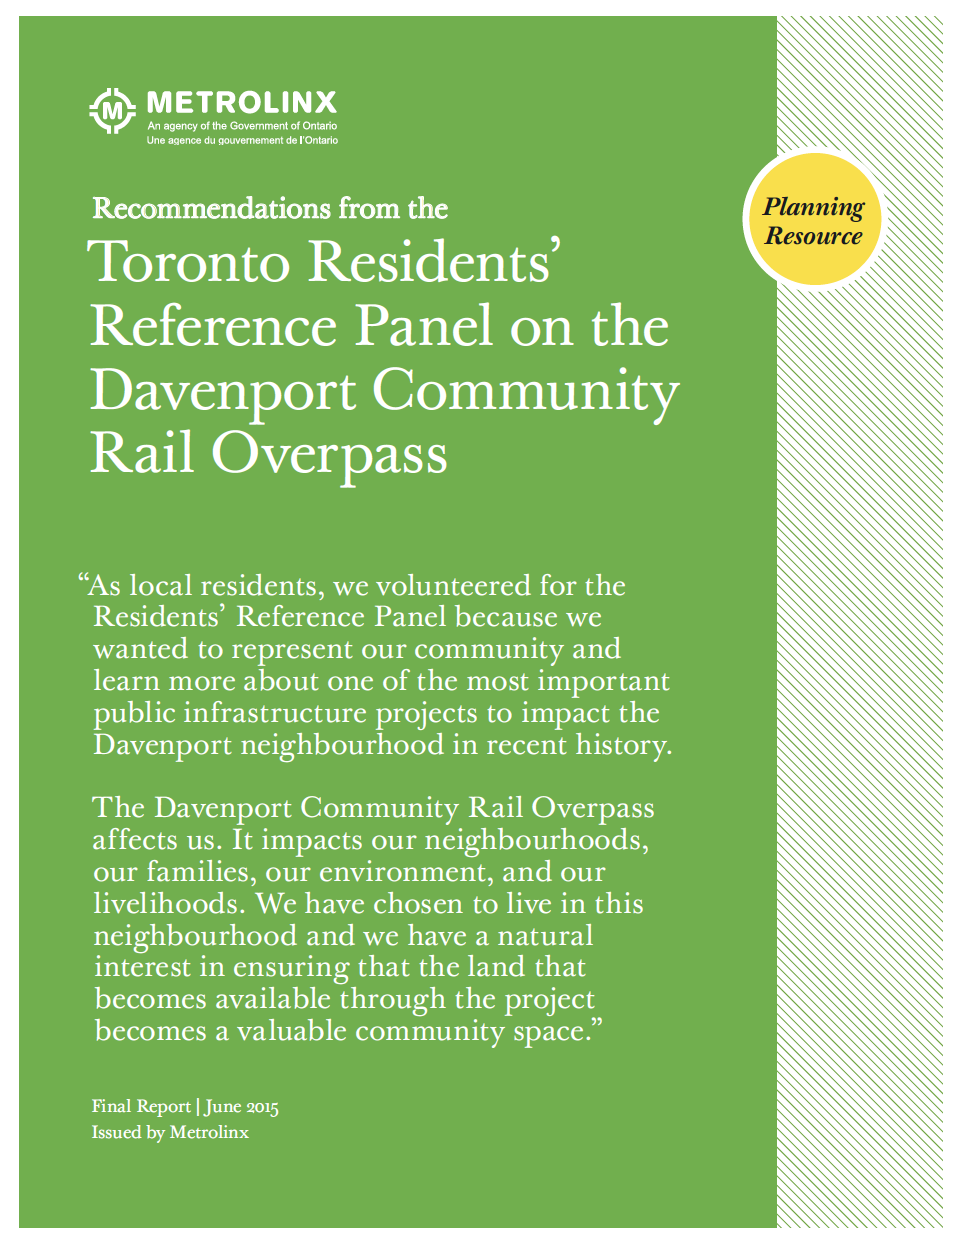 T he Toronto Residents' Reference Panel on the Davenport Community Rail Overpass (2015)